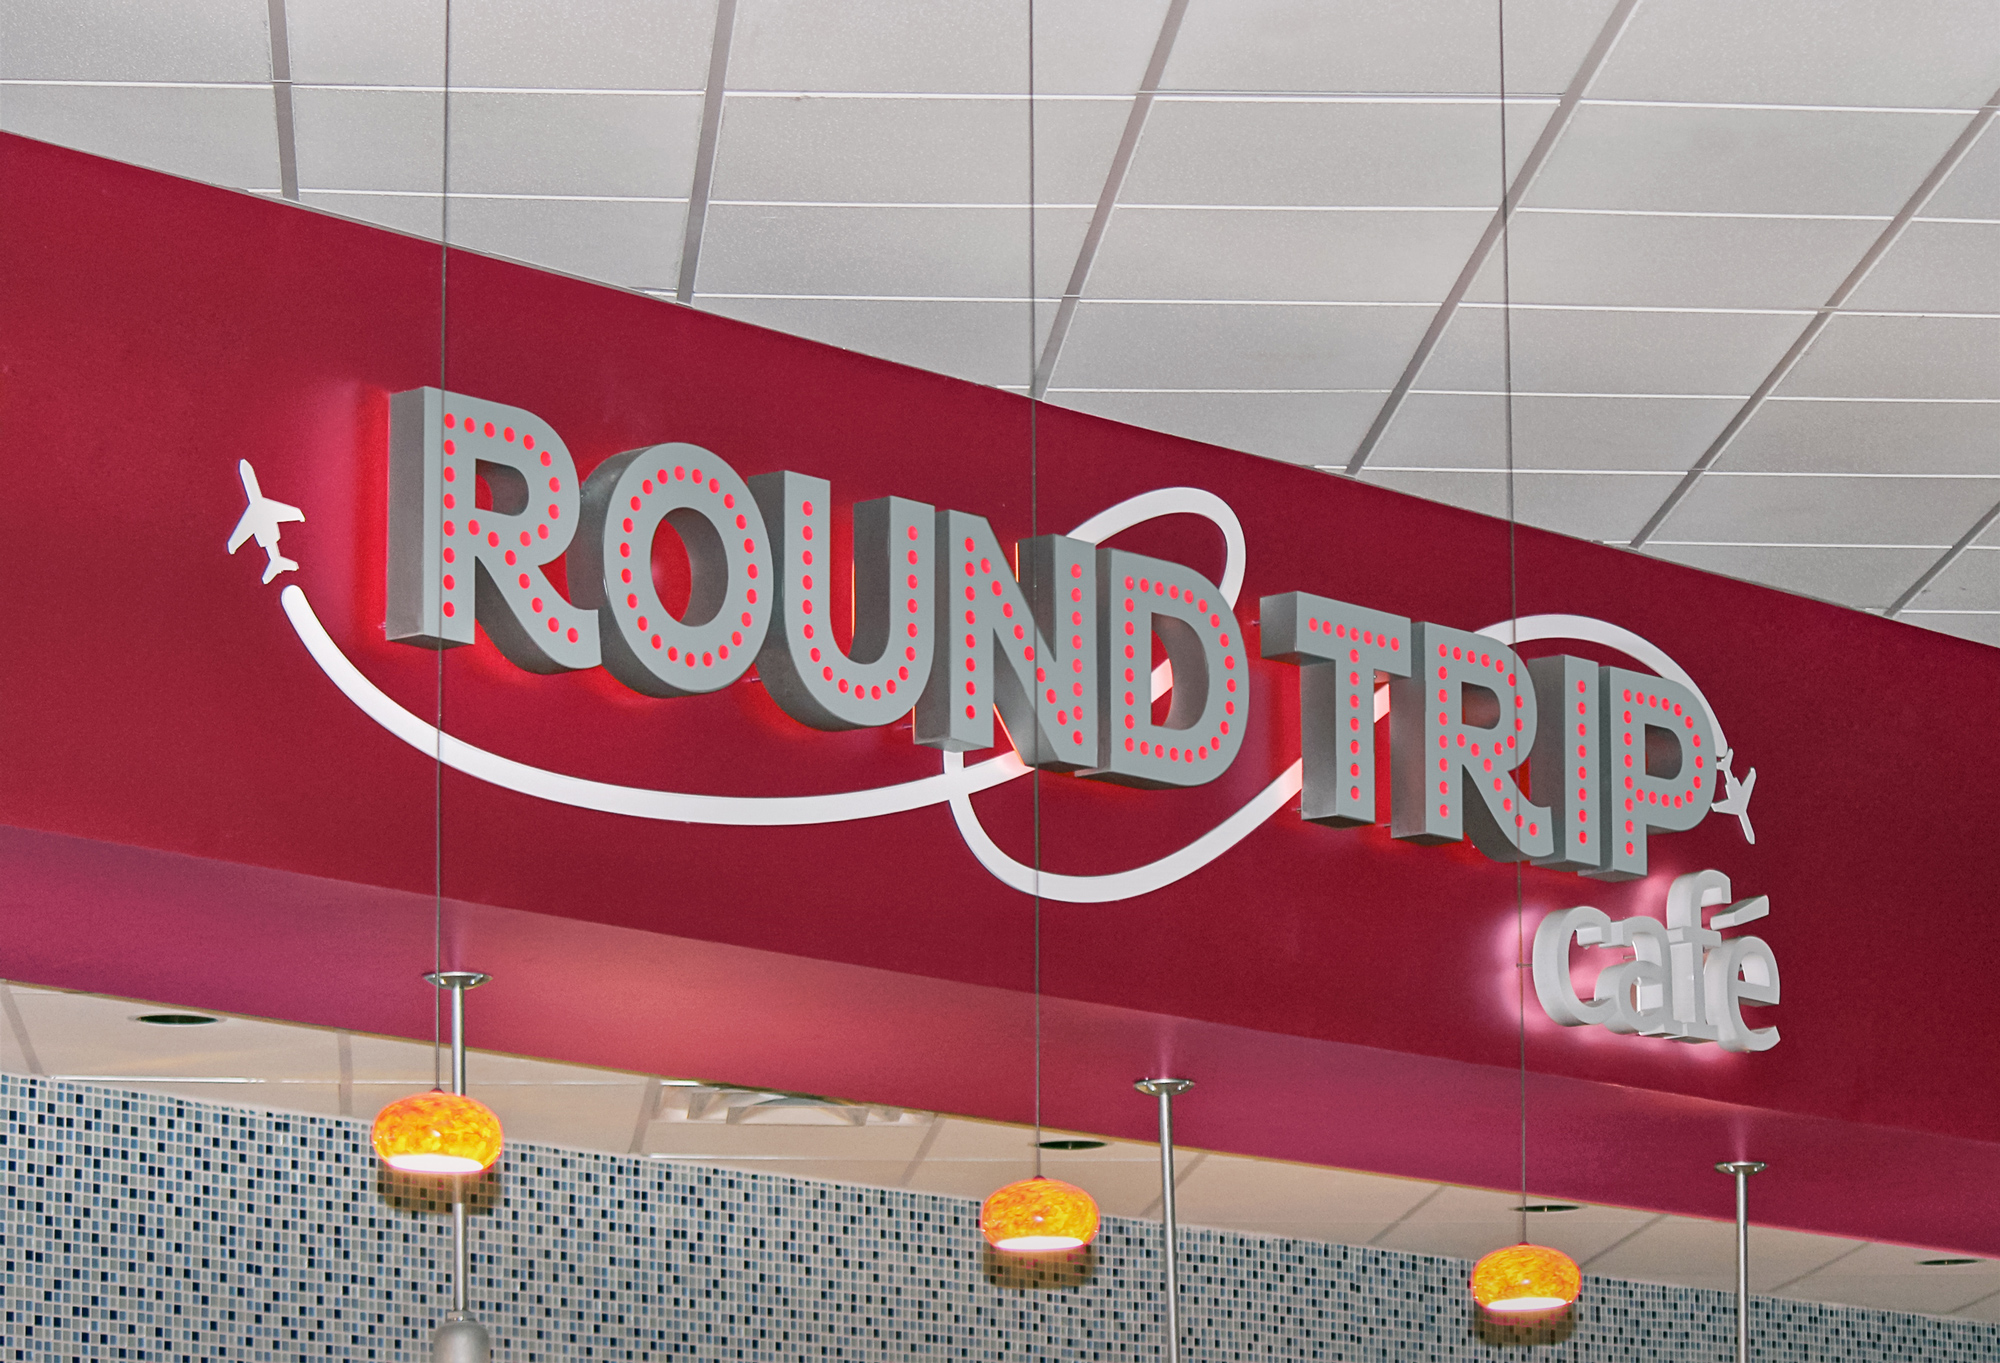 The Round Trip cafésign attracting hungry gamers.